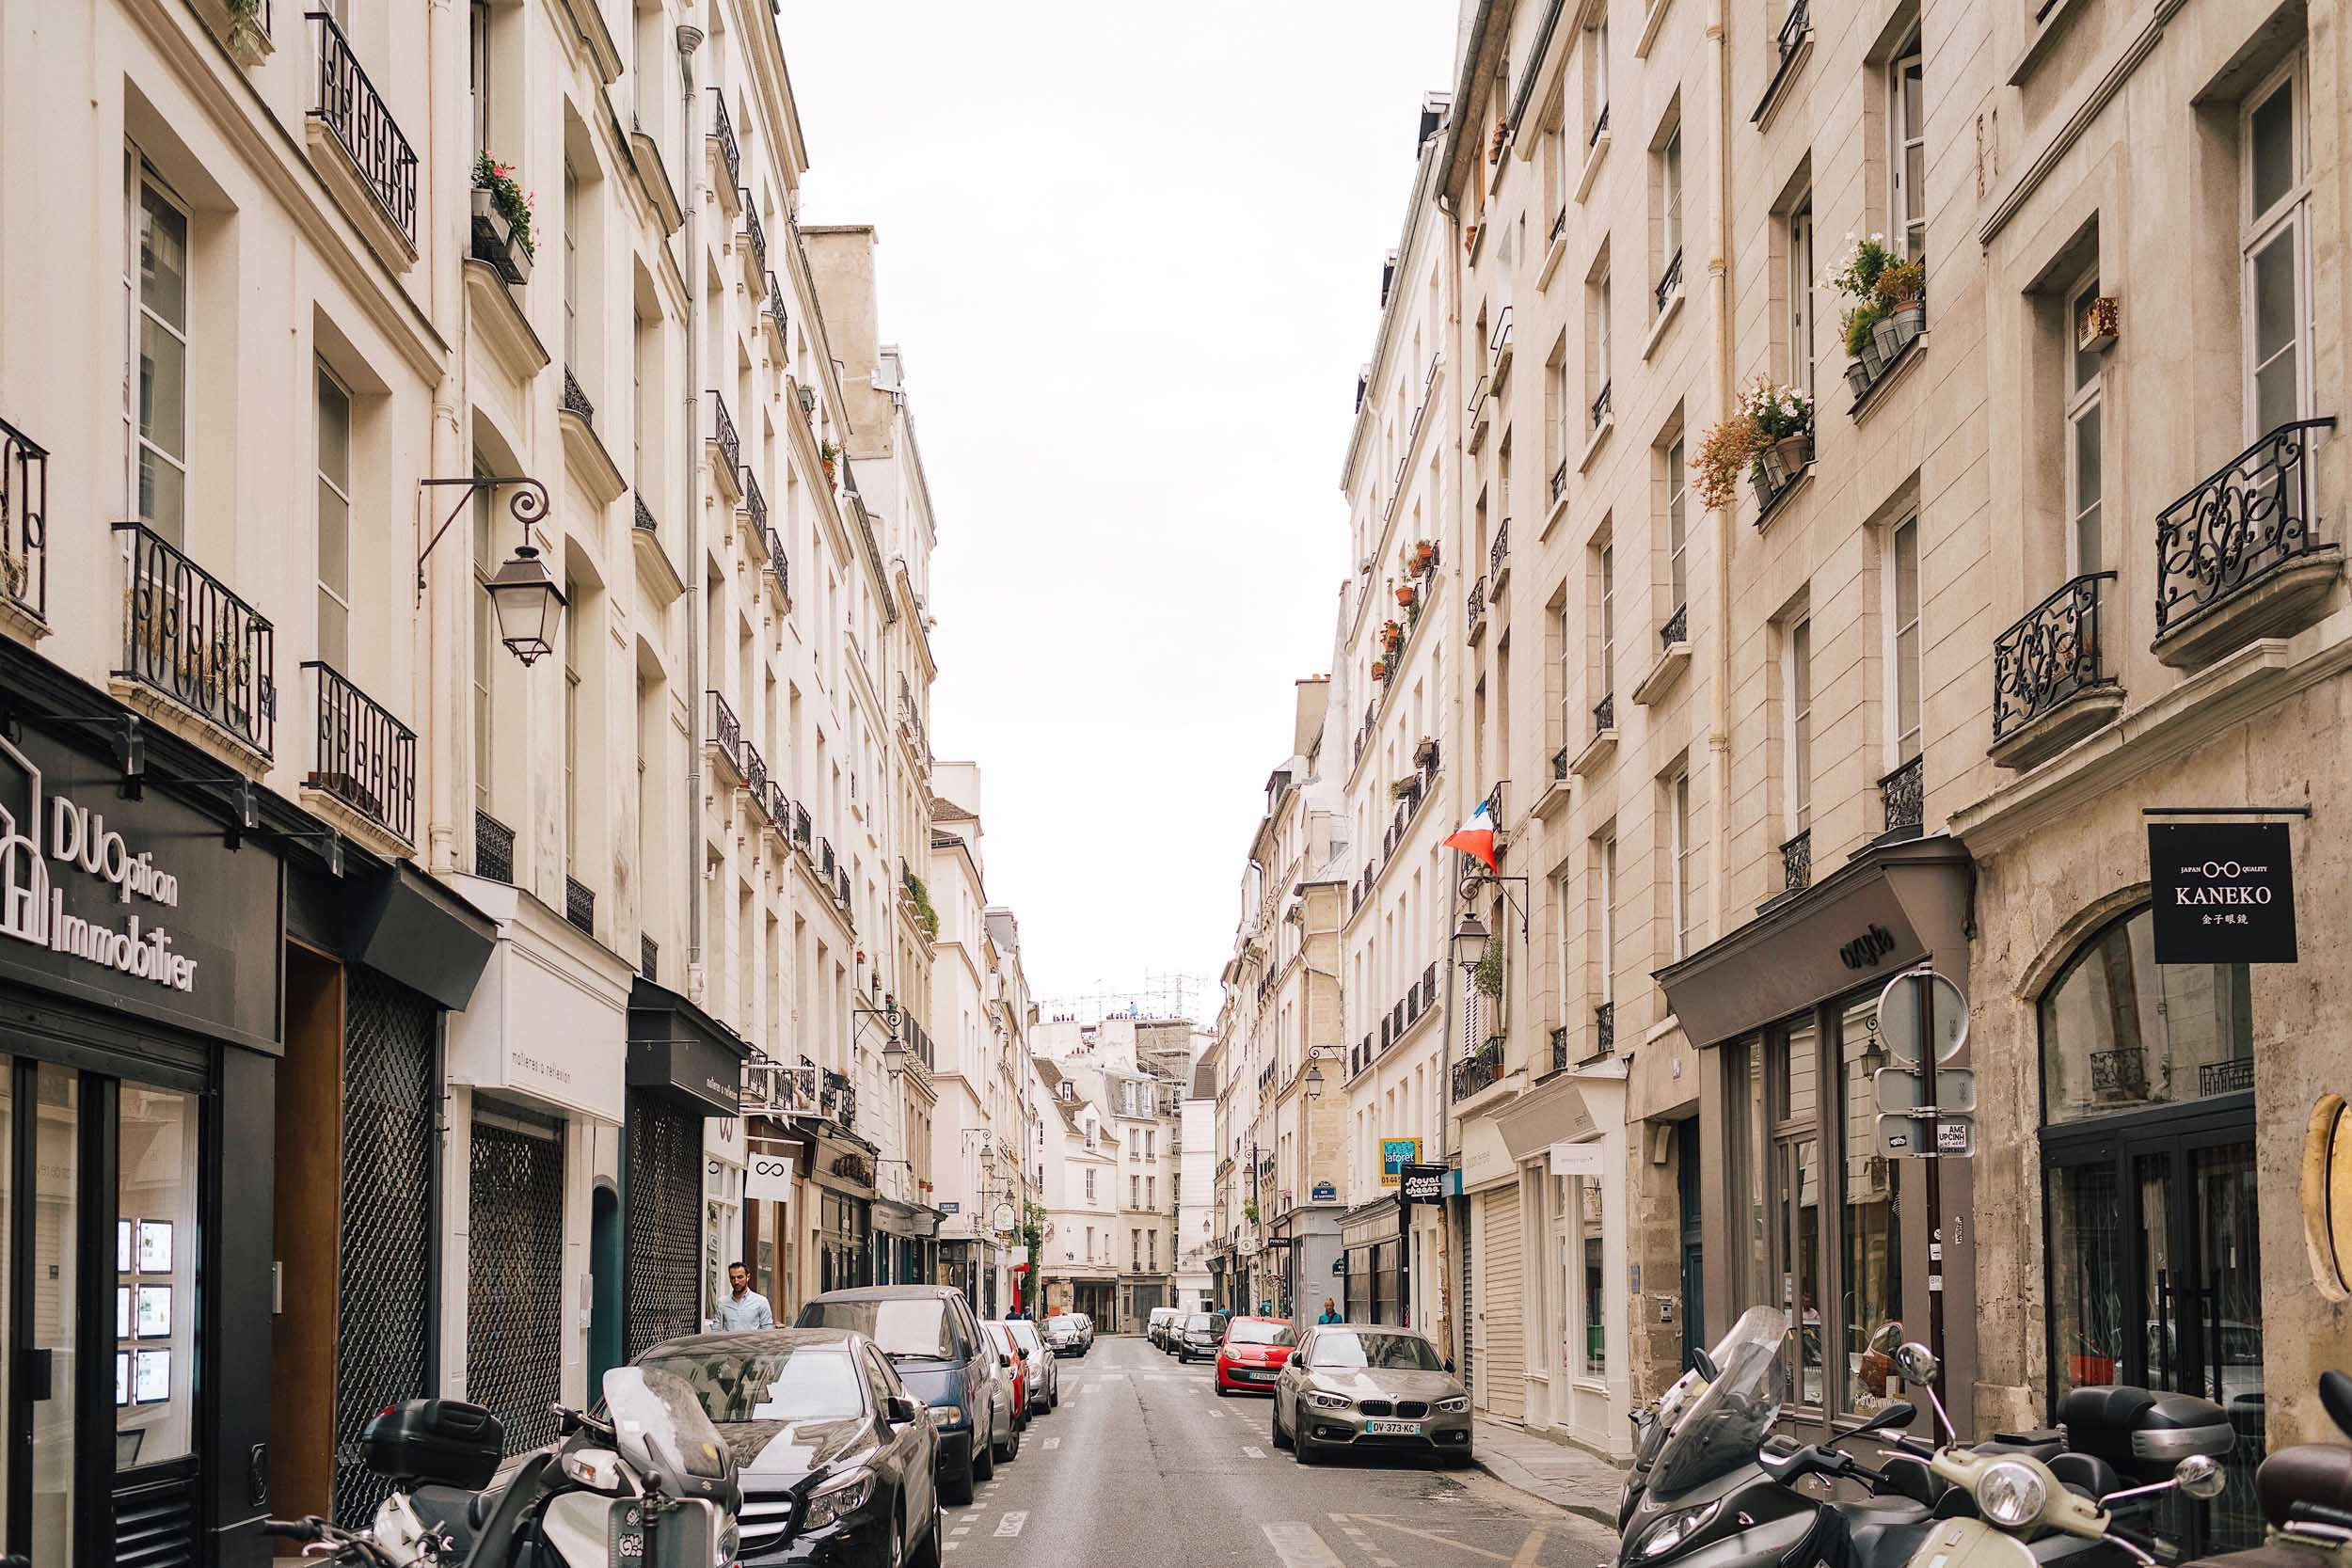 How much should you tip in Paris? 5-10% if the service is above and beyond